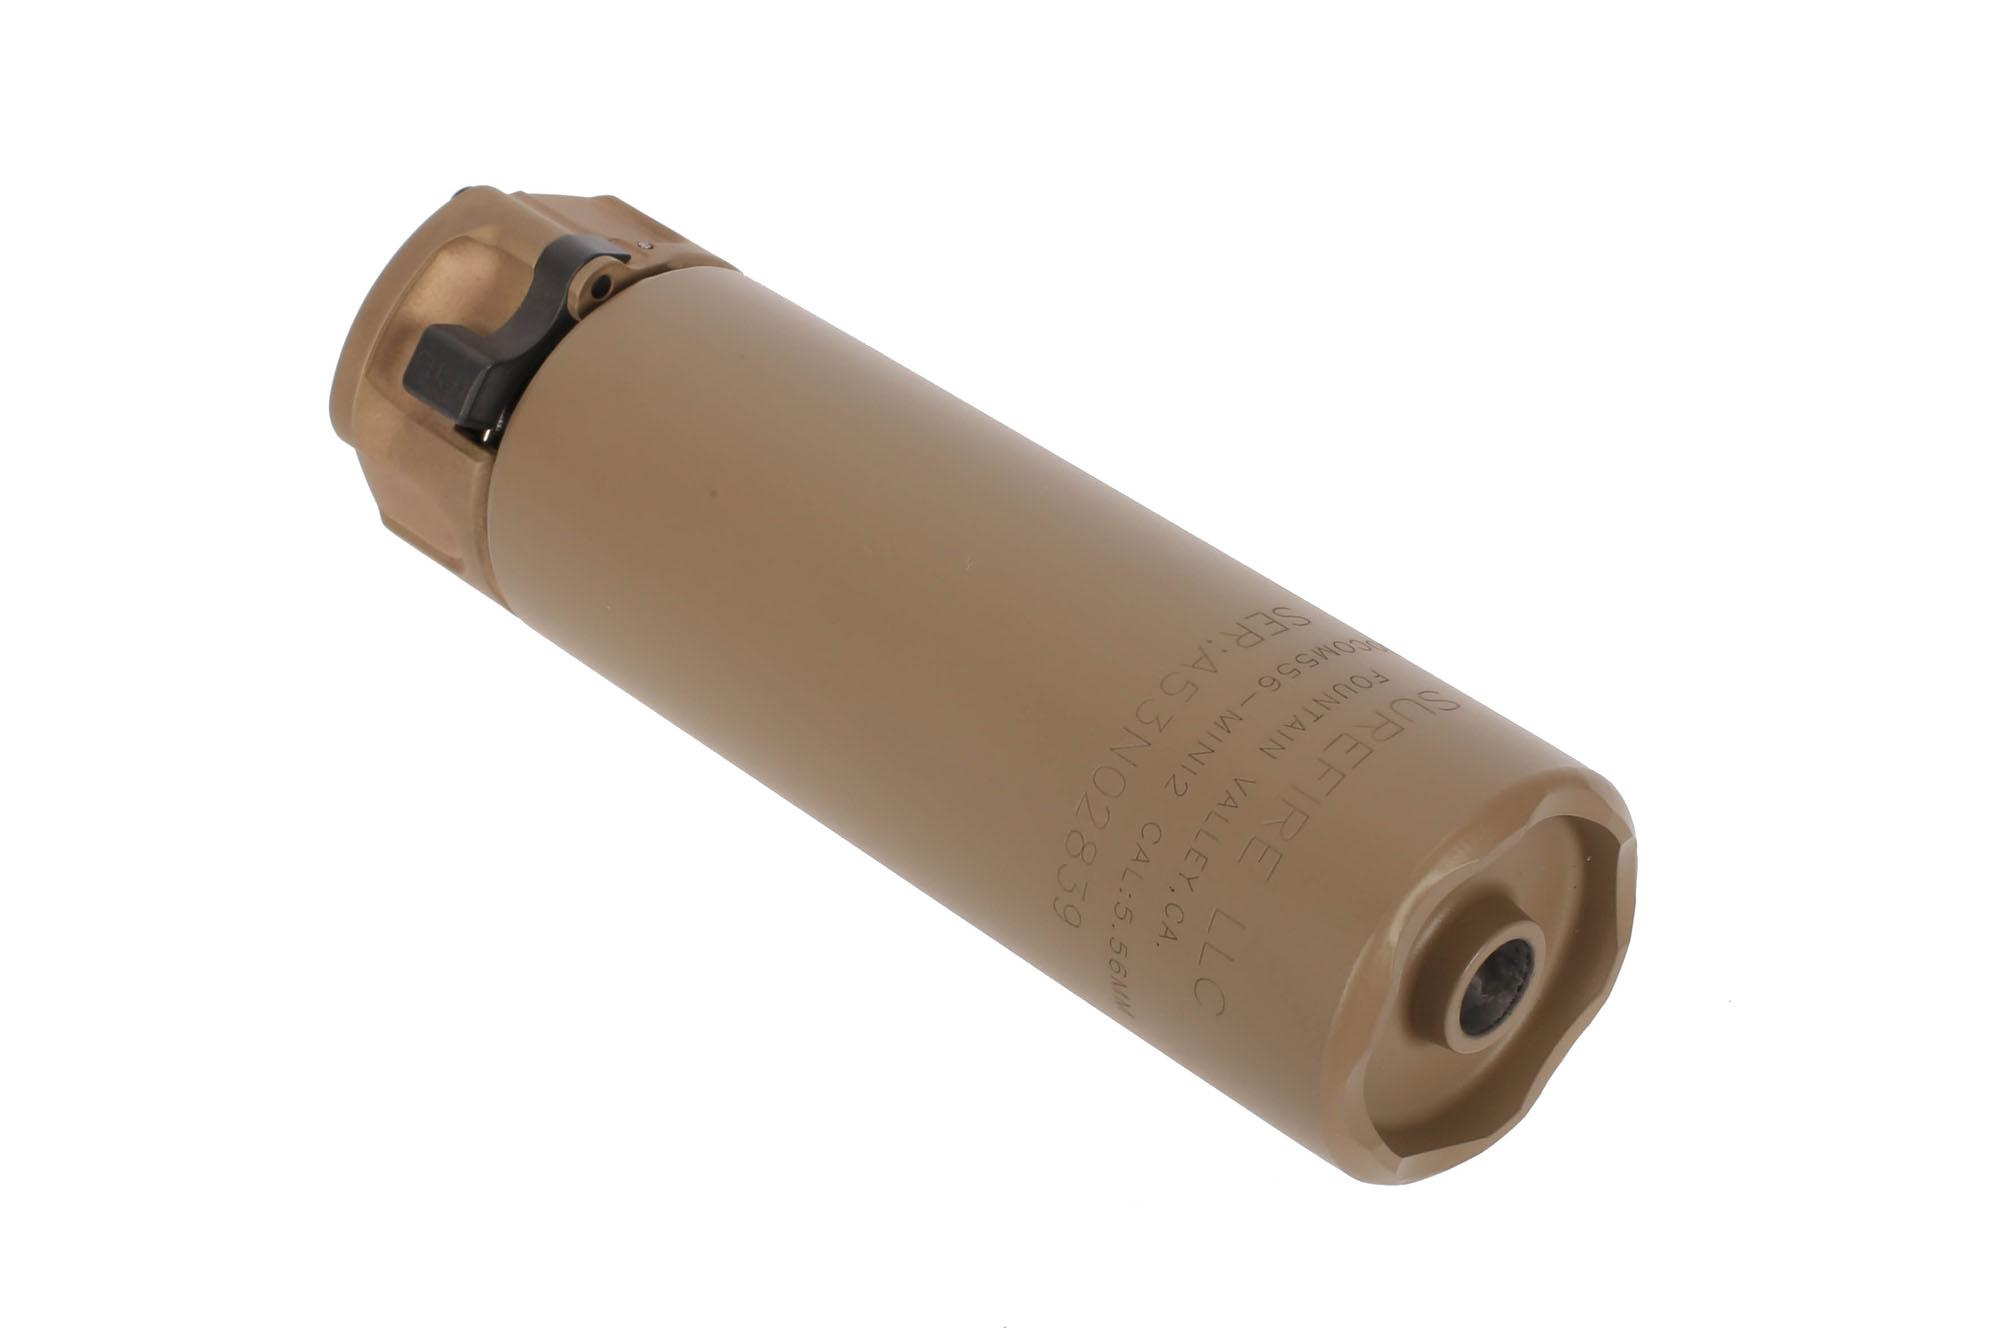 SureFire SOCOM 5.56 MINI2 Compact Fast Attach Rifle Silencer with FDE finish